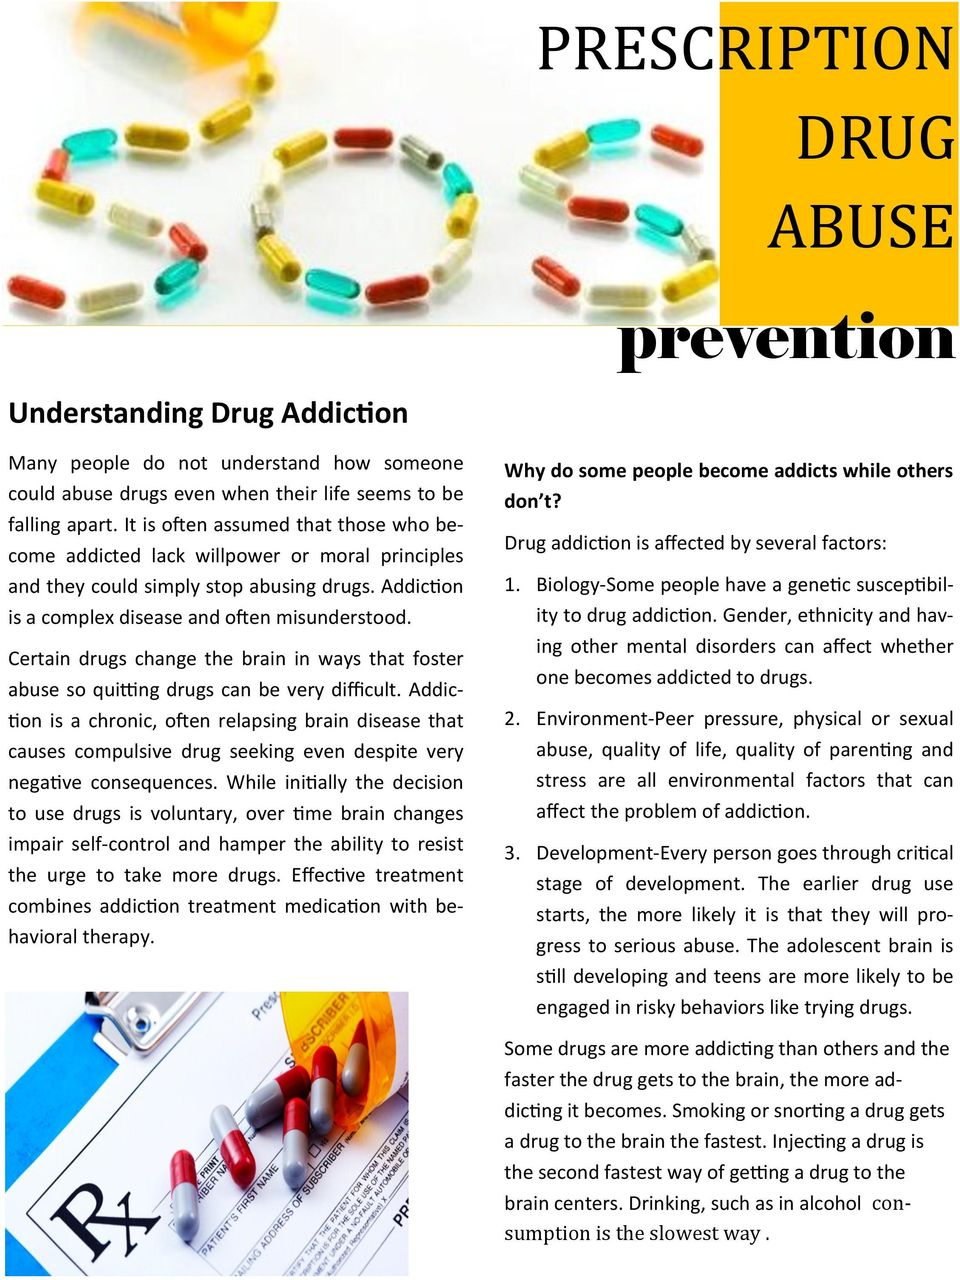 Certain drugs change the brain in ways that foster abuse so quitting drugs can be very difficult.